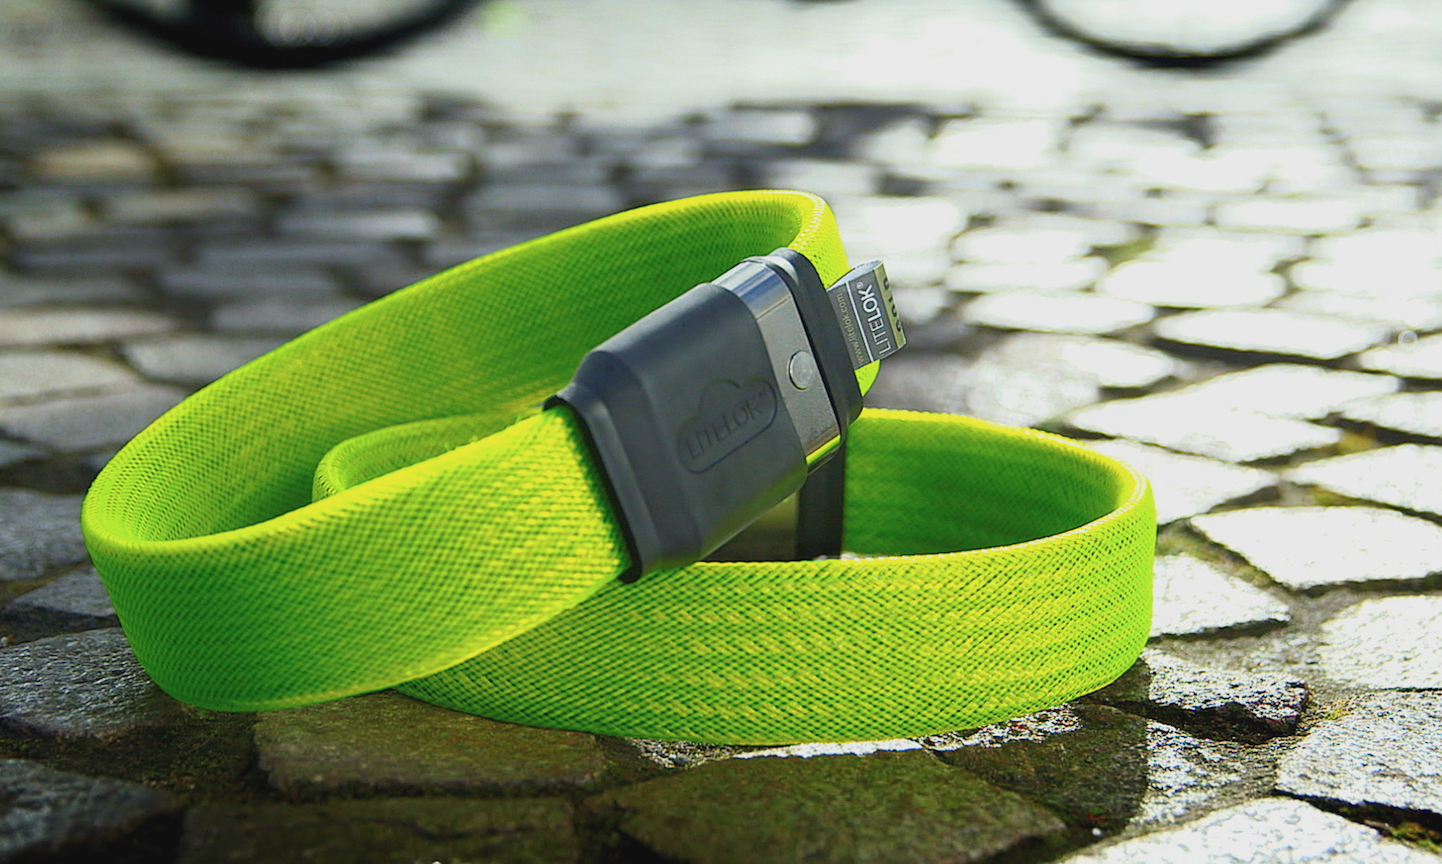 Litelok is a new lightweight lock perfect for bicycles, invented by a Brit and made in Wales. £85